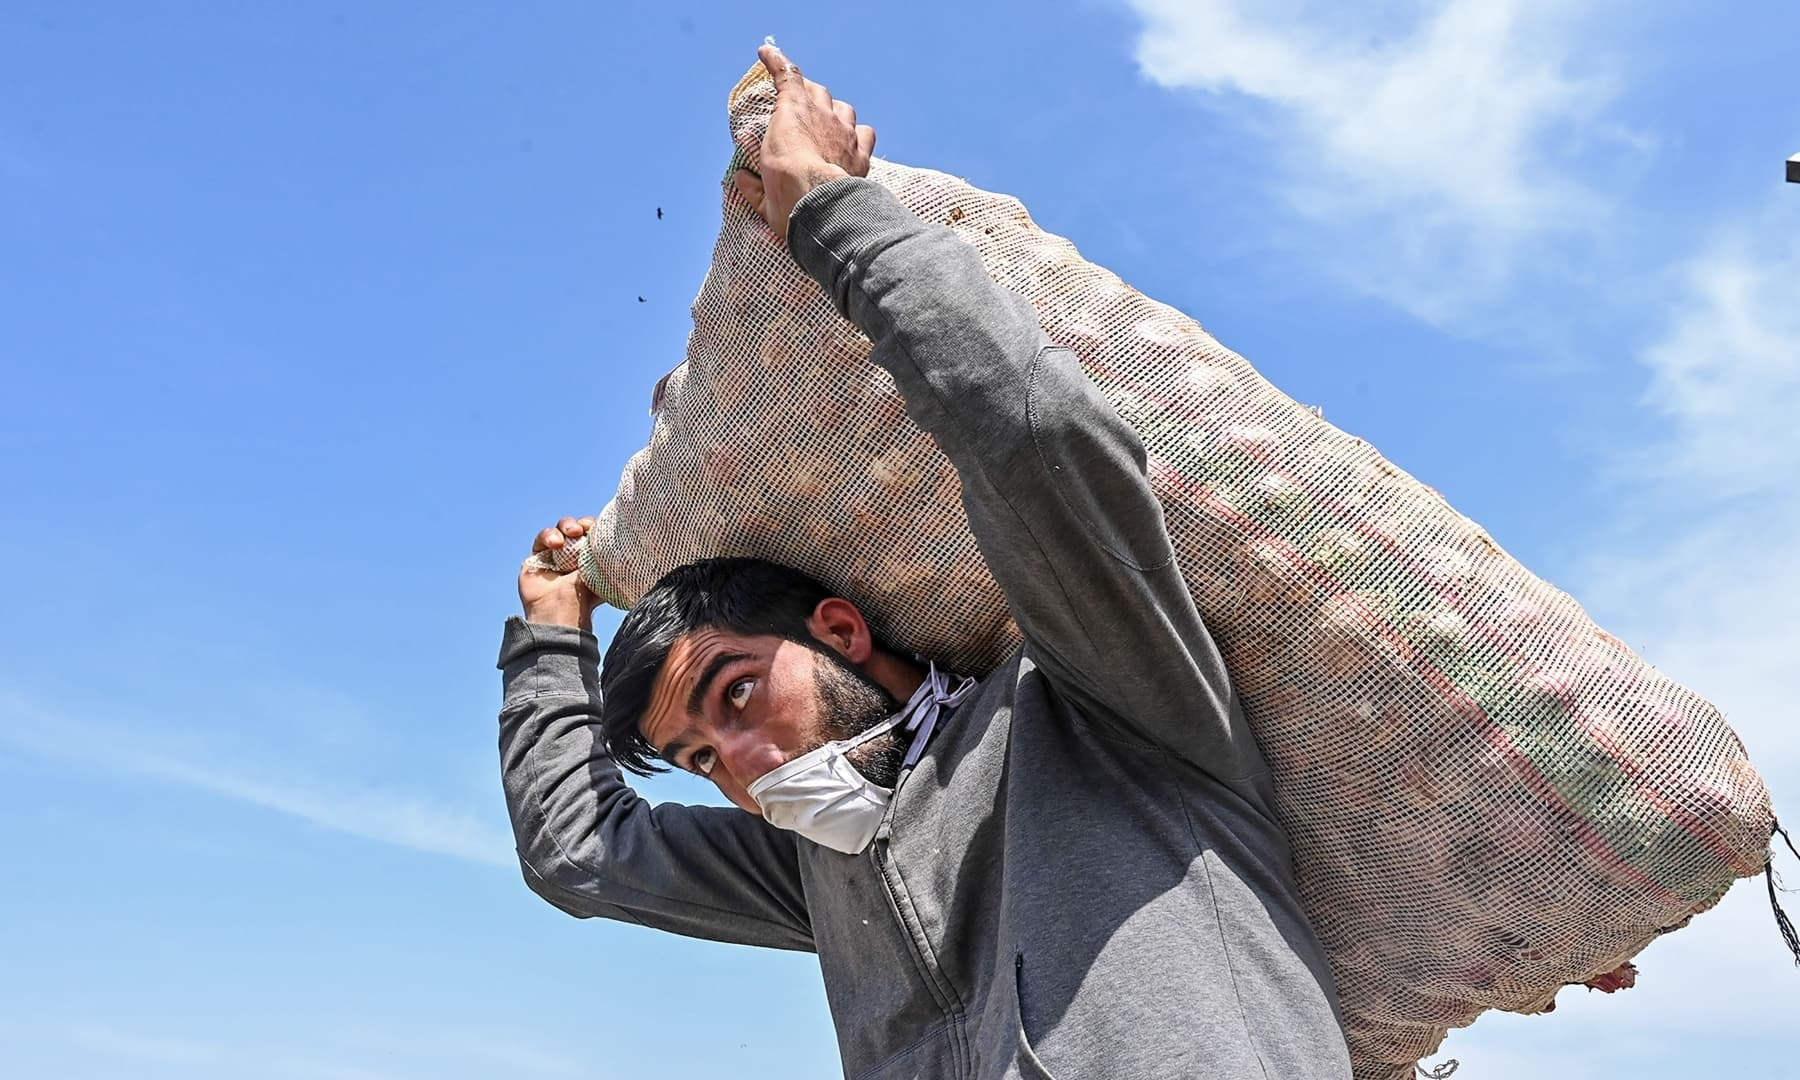 A labourer carries a sack of vegetables at a wholesale market on Labour Day in Srinagar, Indian-occupied Kashmir. — AFP